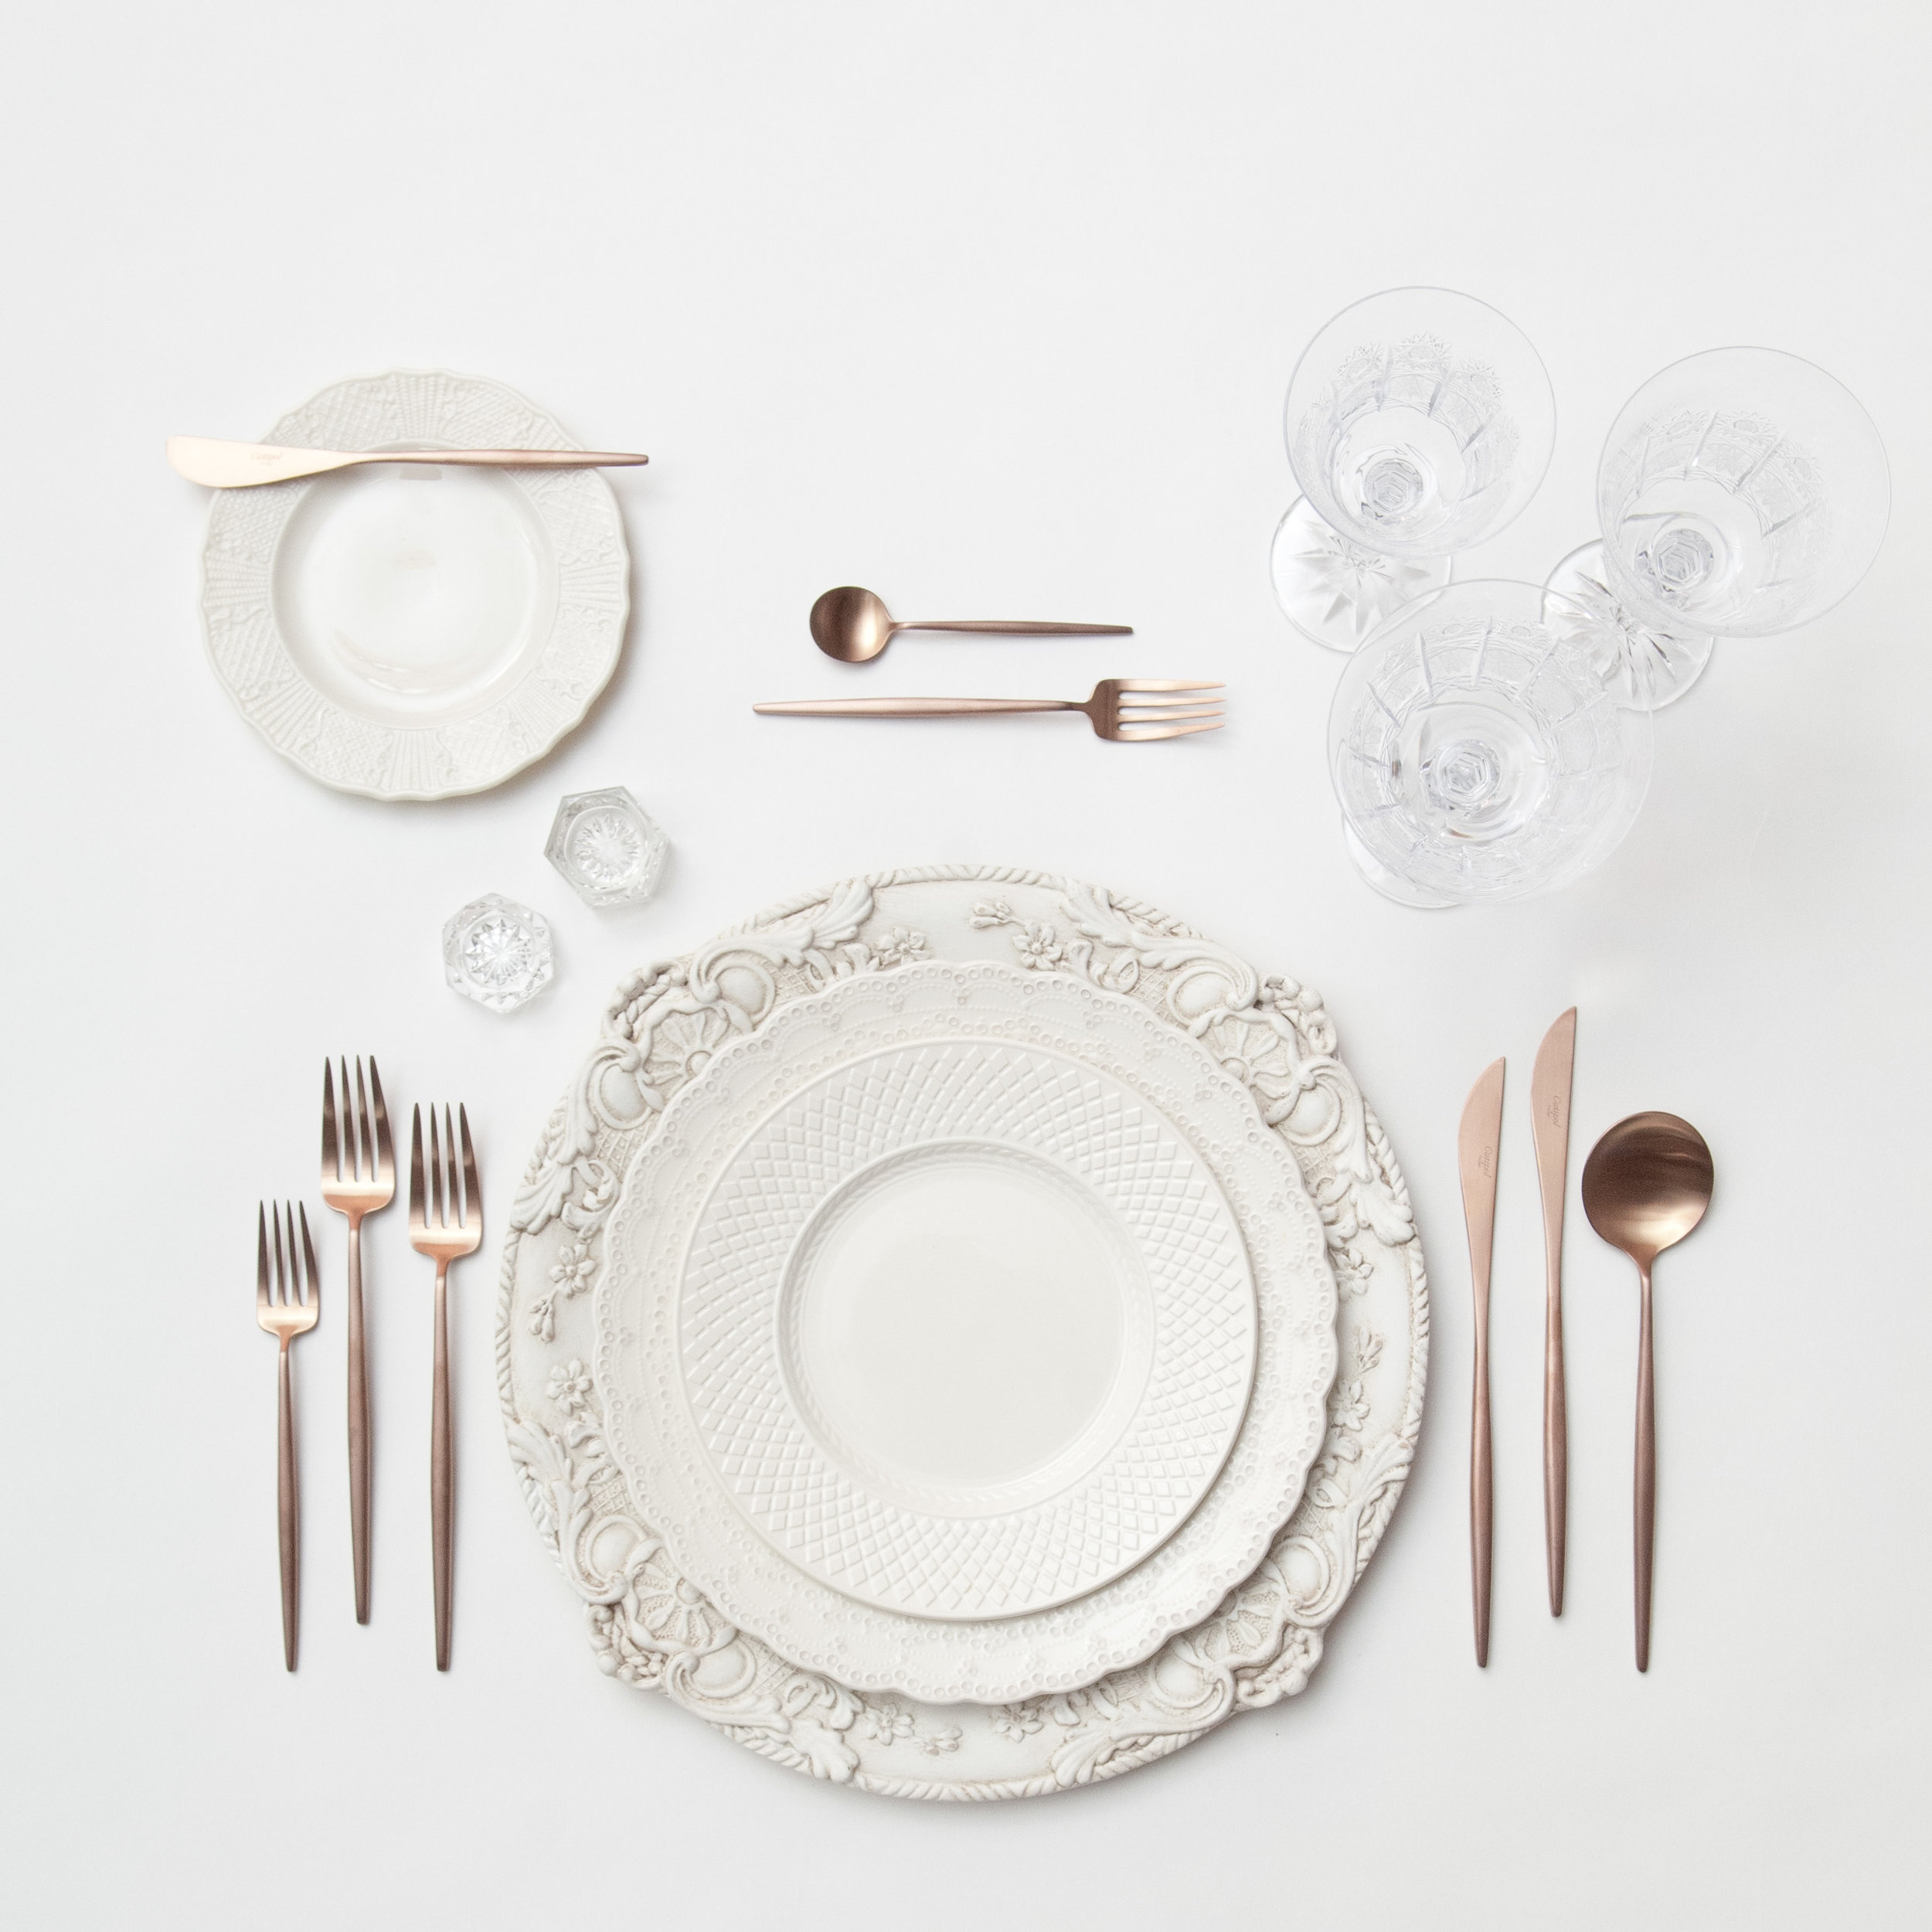 RENT: Verona Chargers in Antique White + White Collection Vintage China + Moon Flatware in Brushed Rose Gold + Czech Crystal Stemware + Antique Crystal Salt Cellars  SHOP:Verona Chargers in Antique White +Moon Flatware in Brushed Rose Gold